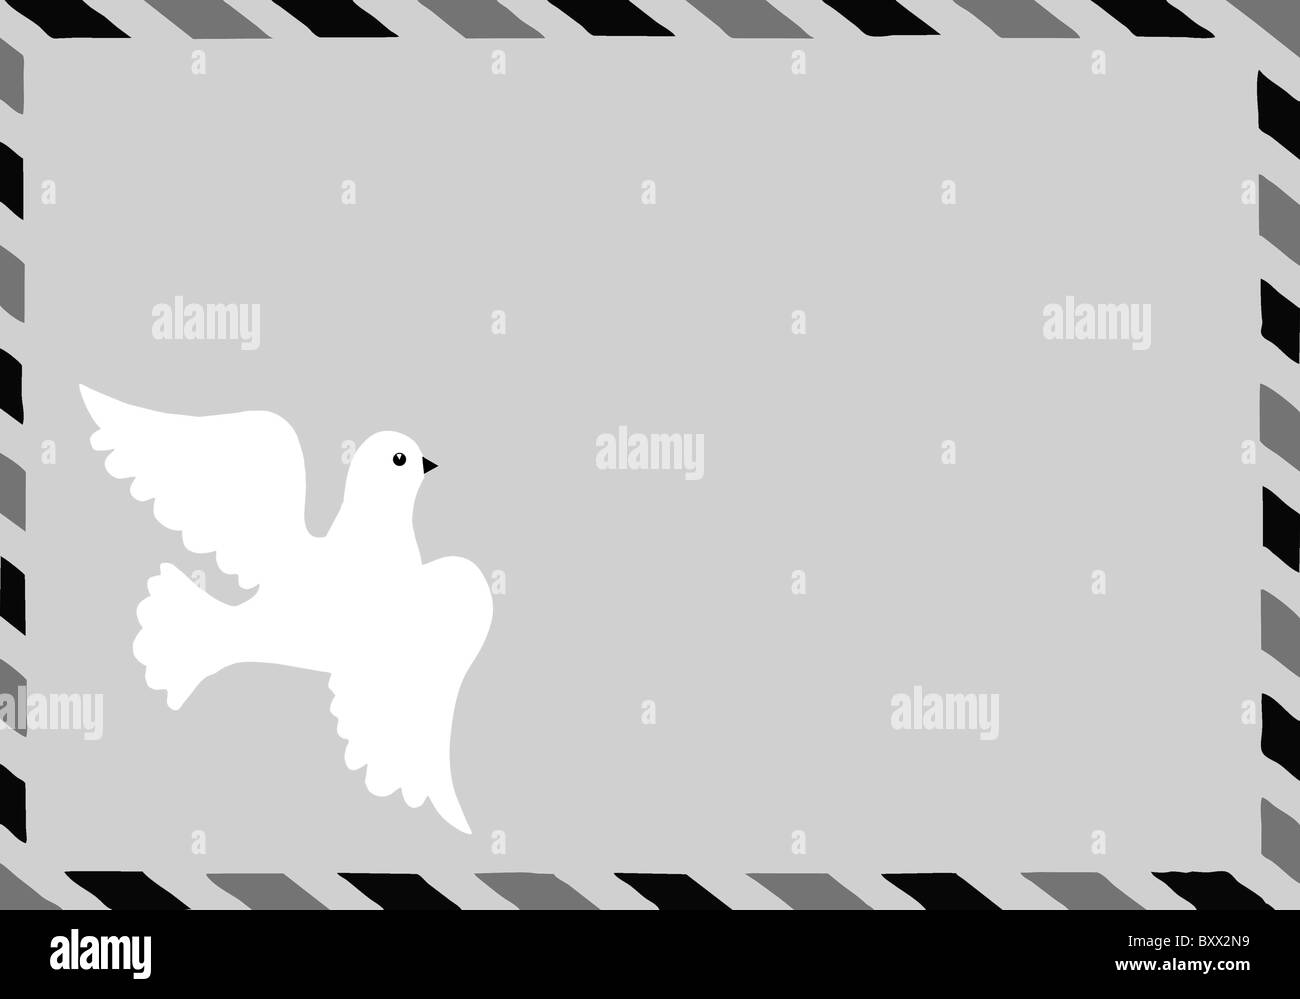 vector illustration of the postal envelope with dove - Stock Image